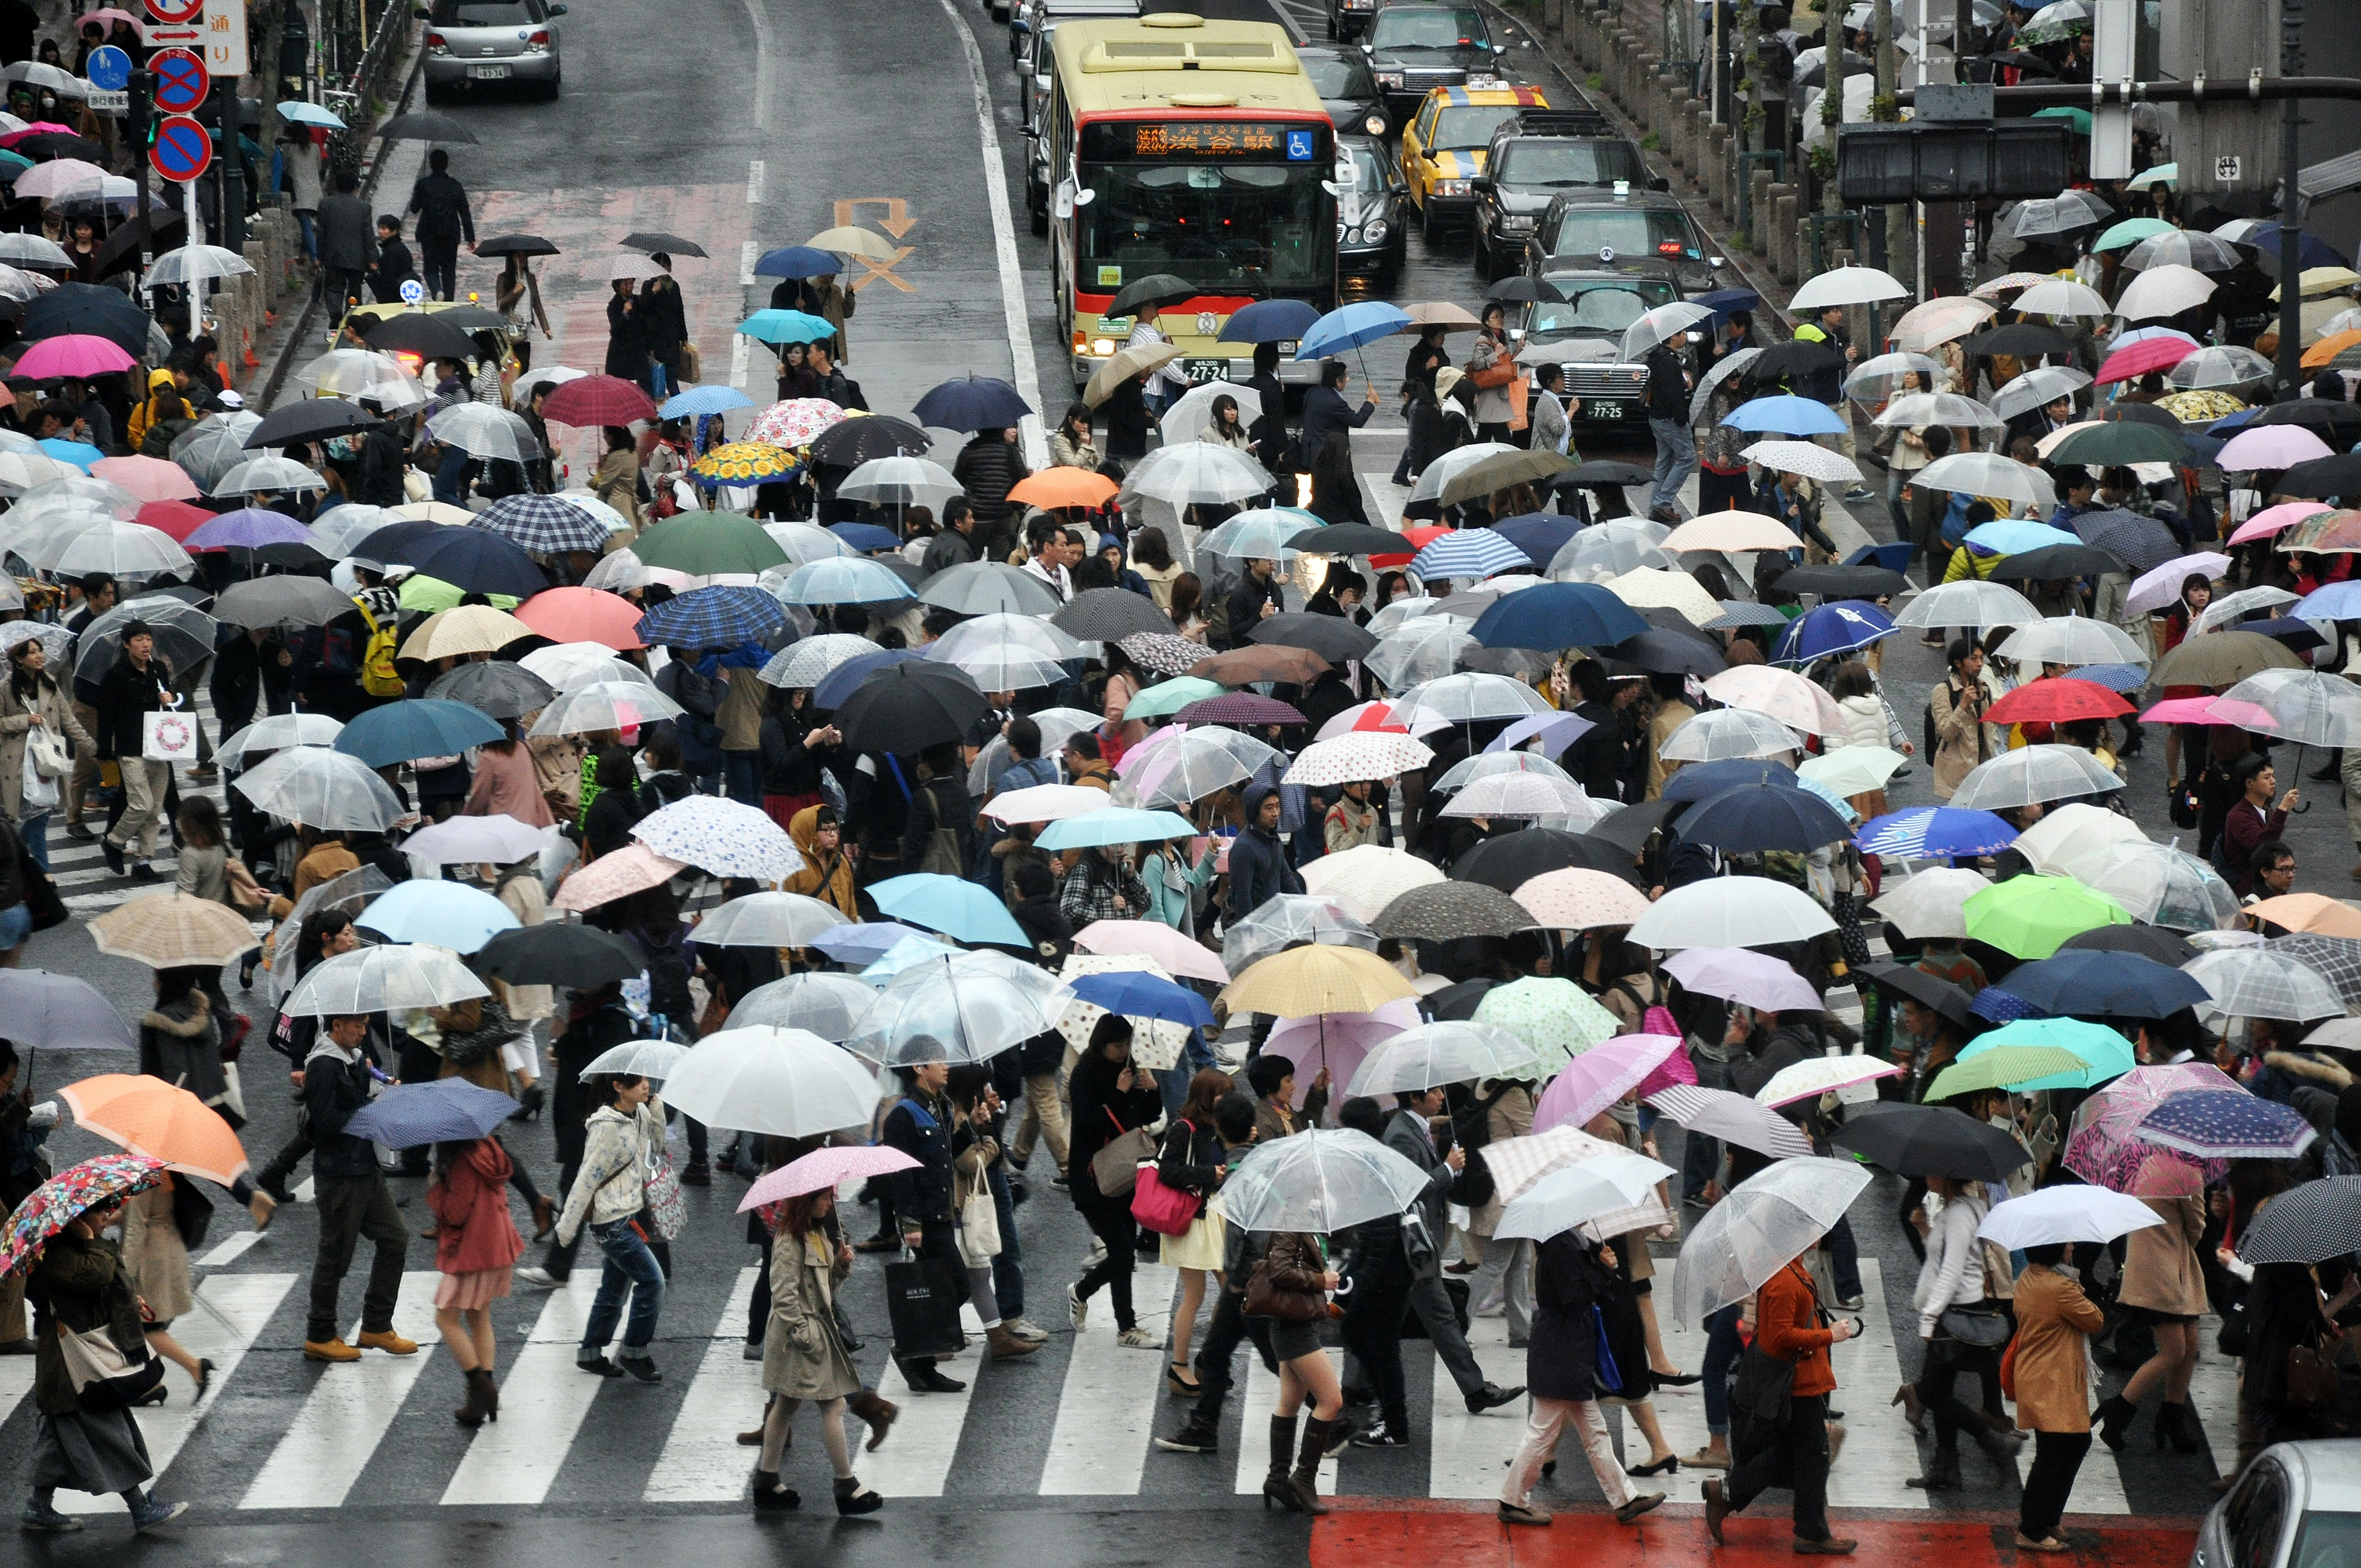 A crowded crosswalk in Tokyo on a rainy day